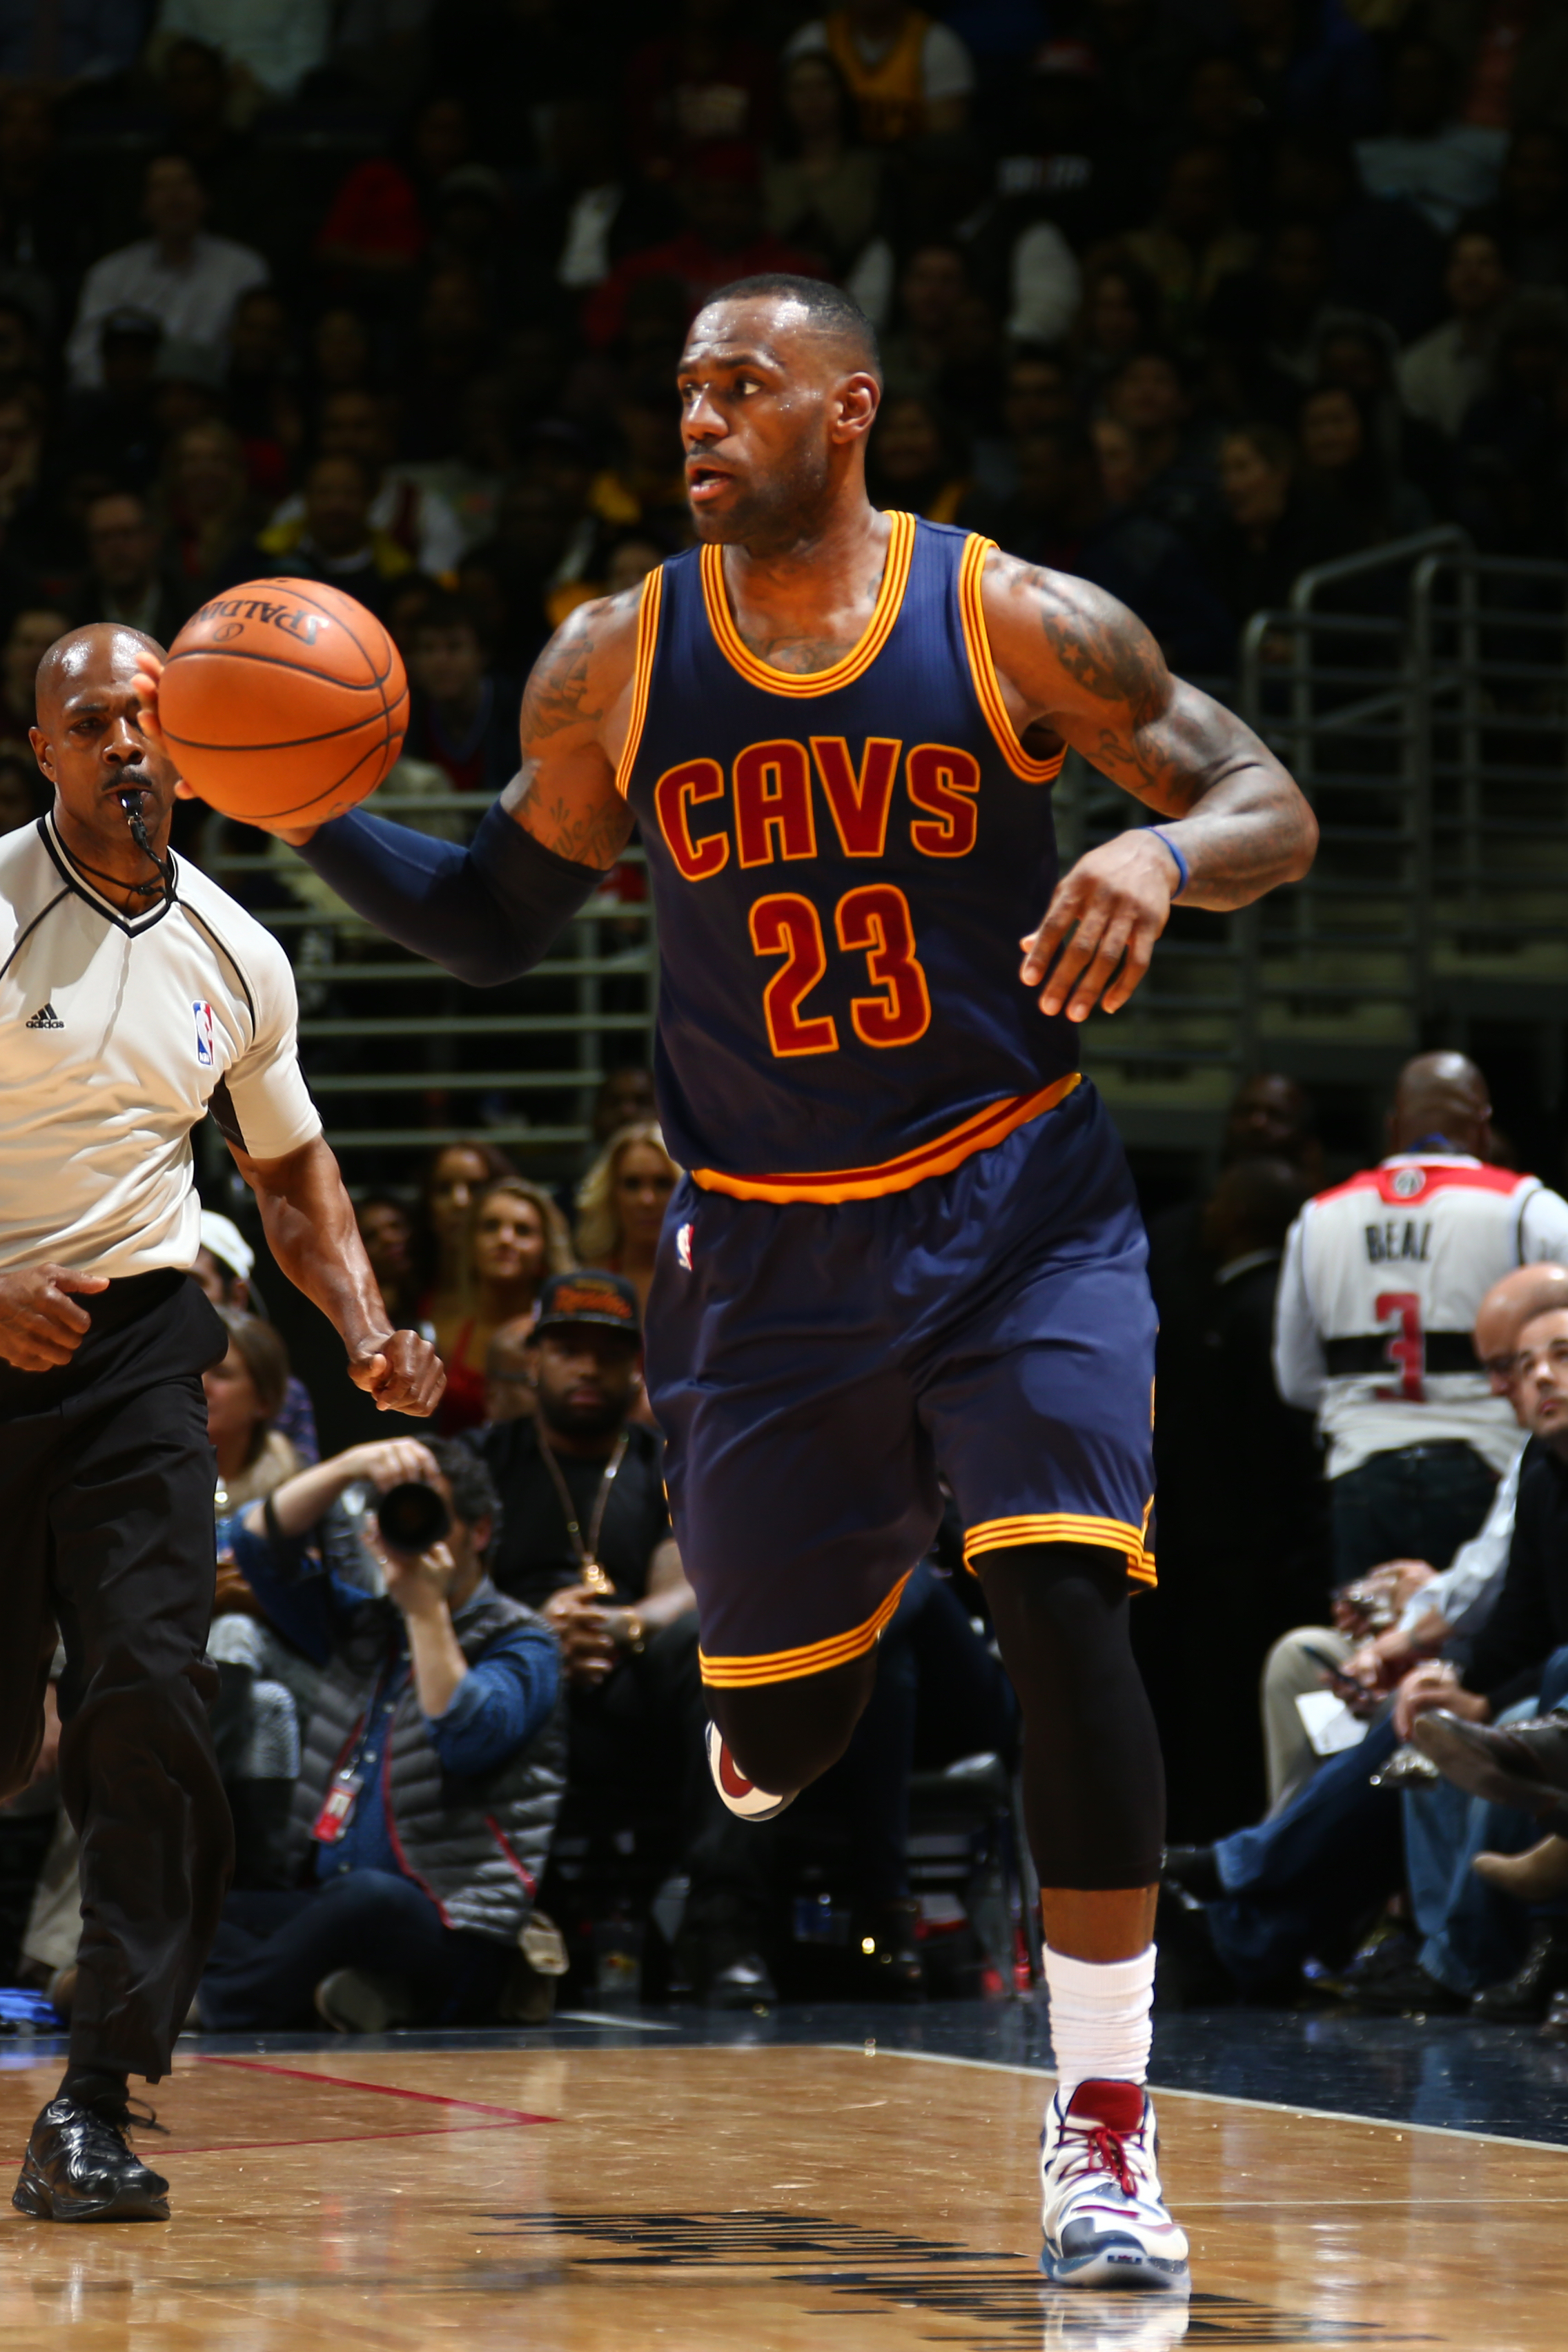 WASHINGTON, DC - JANUARY 6: LeBron James #23 of the Cleveland Cavaliers drives to the basket against the Washington Wizards during the game on January 6, 2016 at Verizon Center in Washington, District of Columbia. (Photo by Ned Dishman/NBAE via Getty Imag